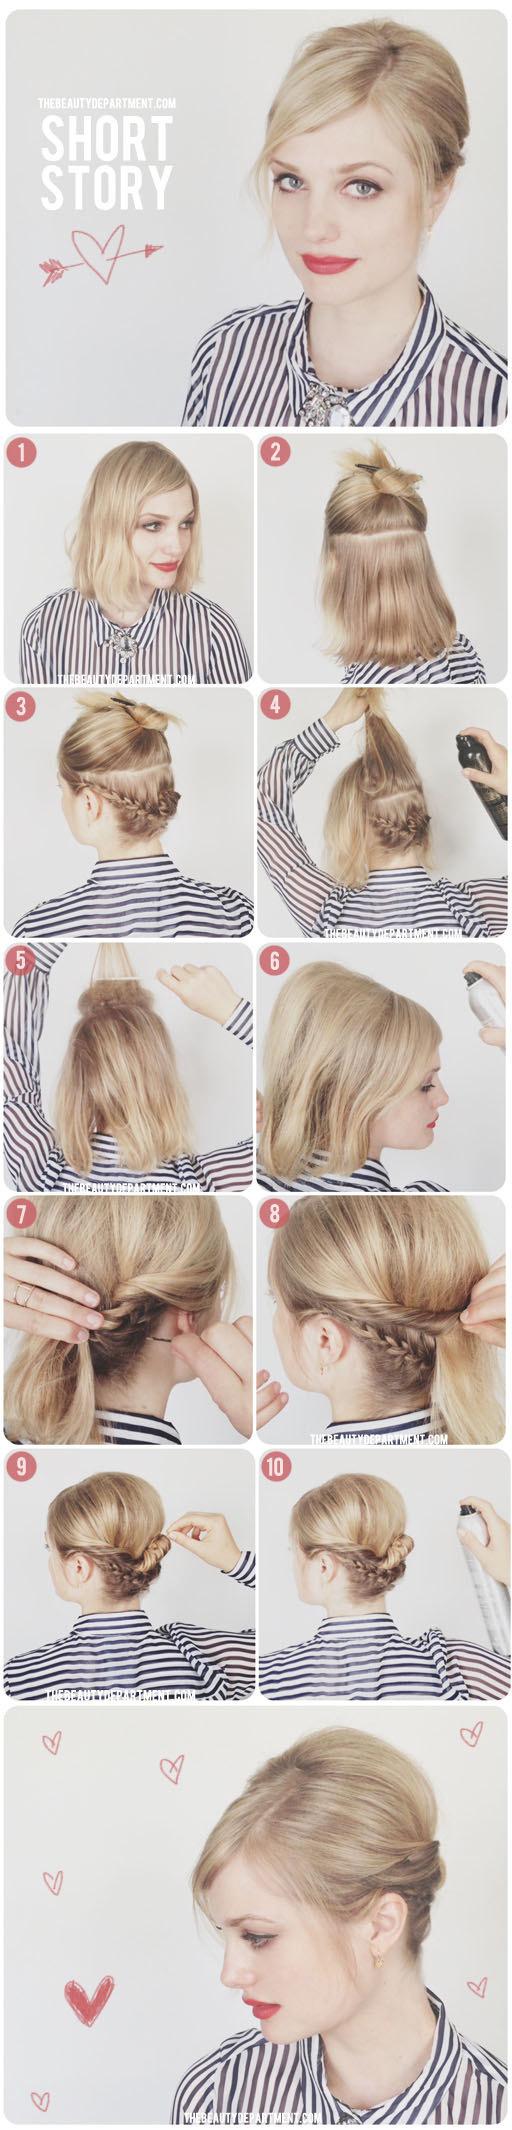 20 Ways To Take Your Short Hair To The Next Level